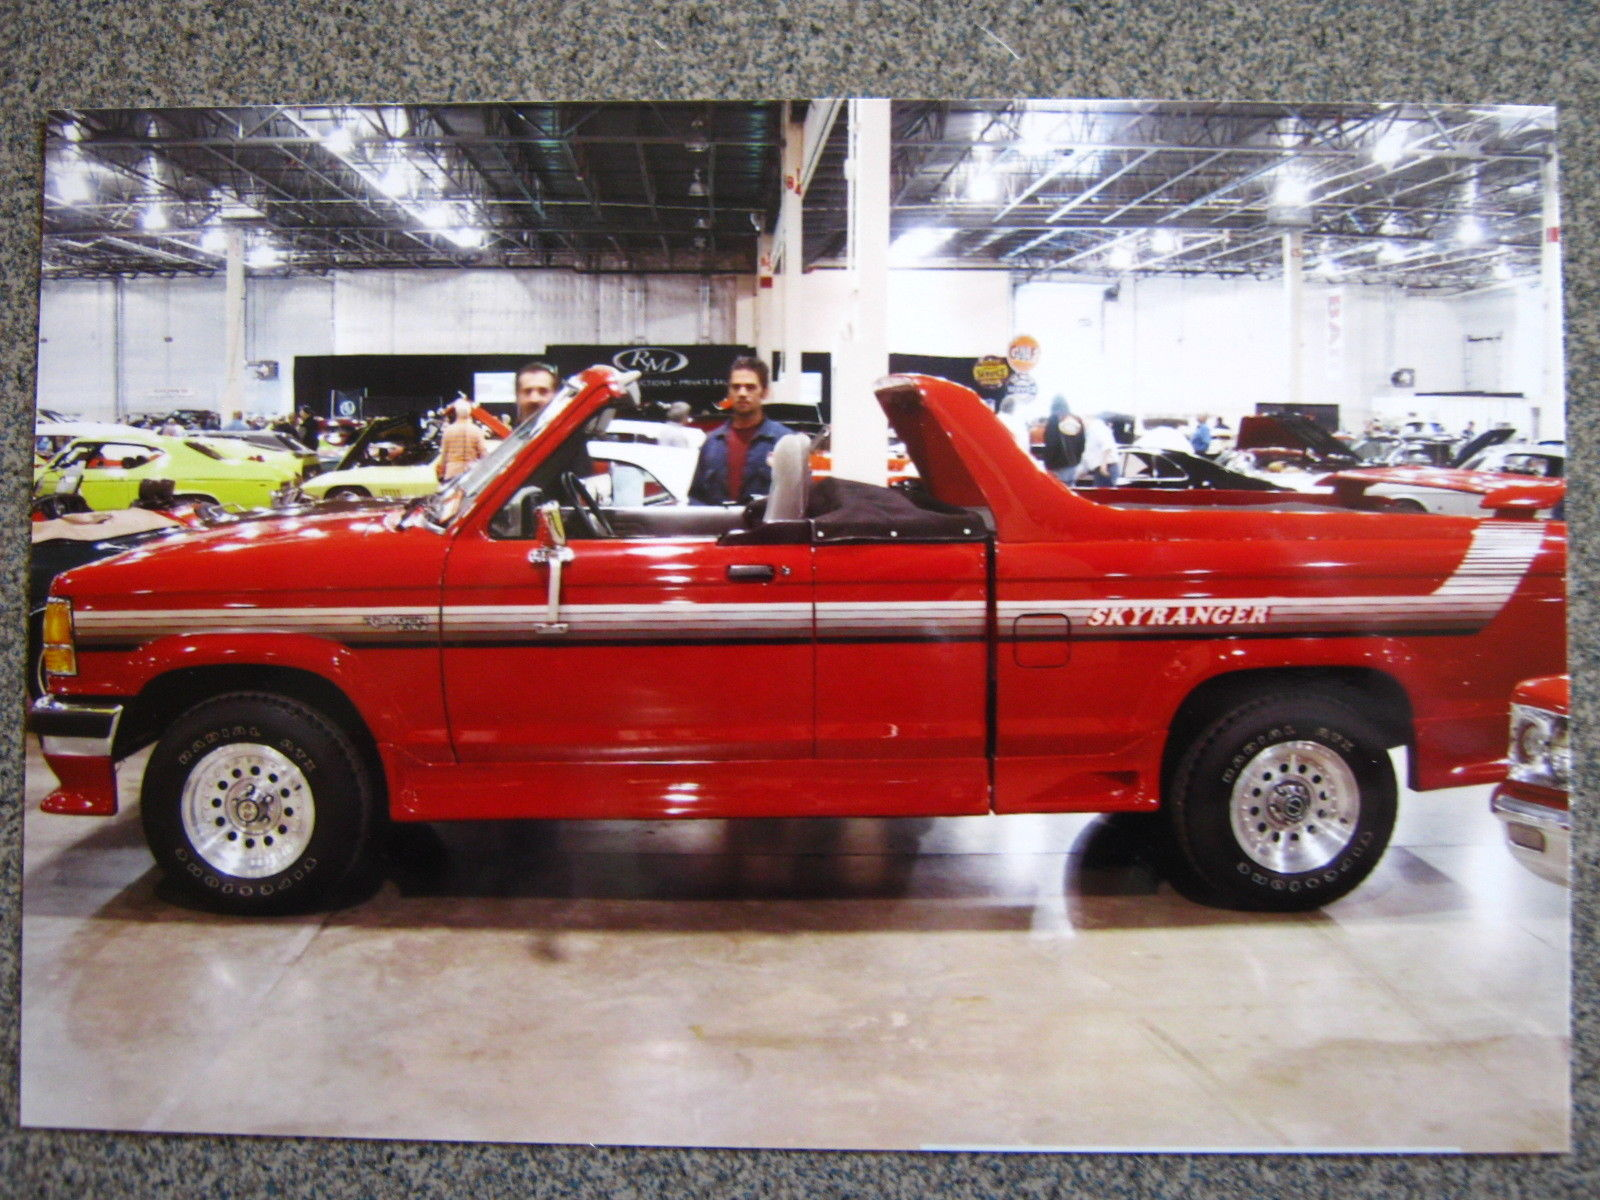 1991 Ford Skyranger Convertible